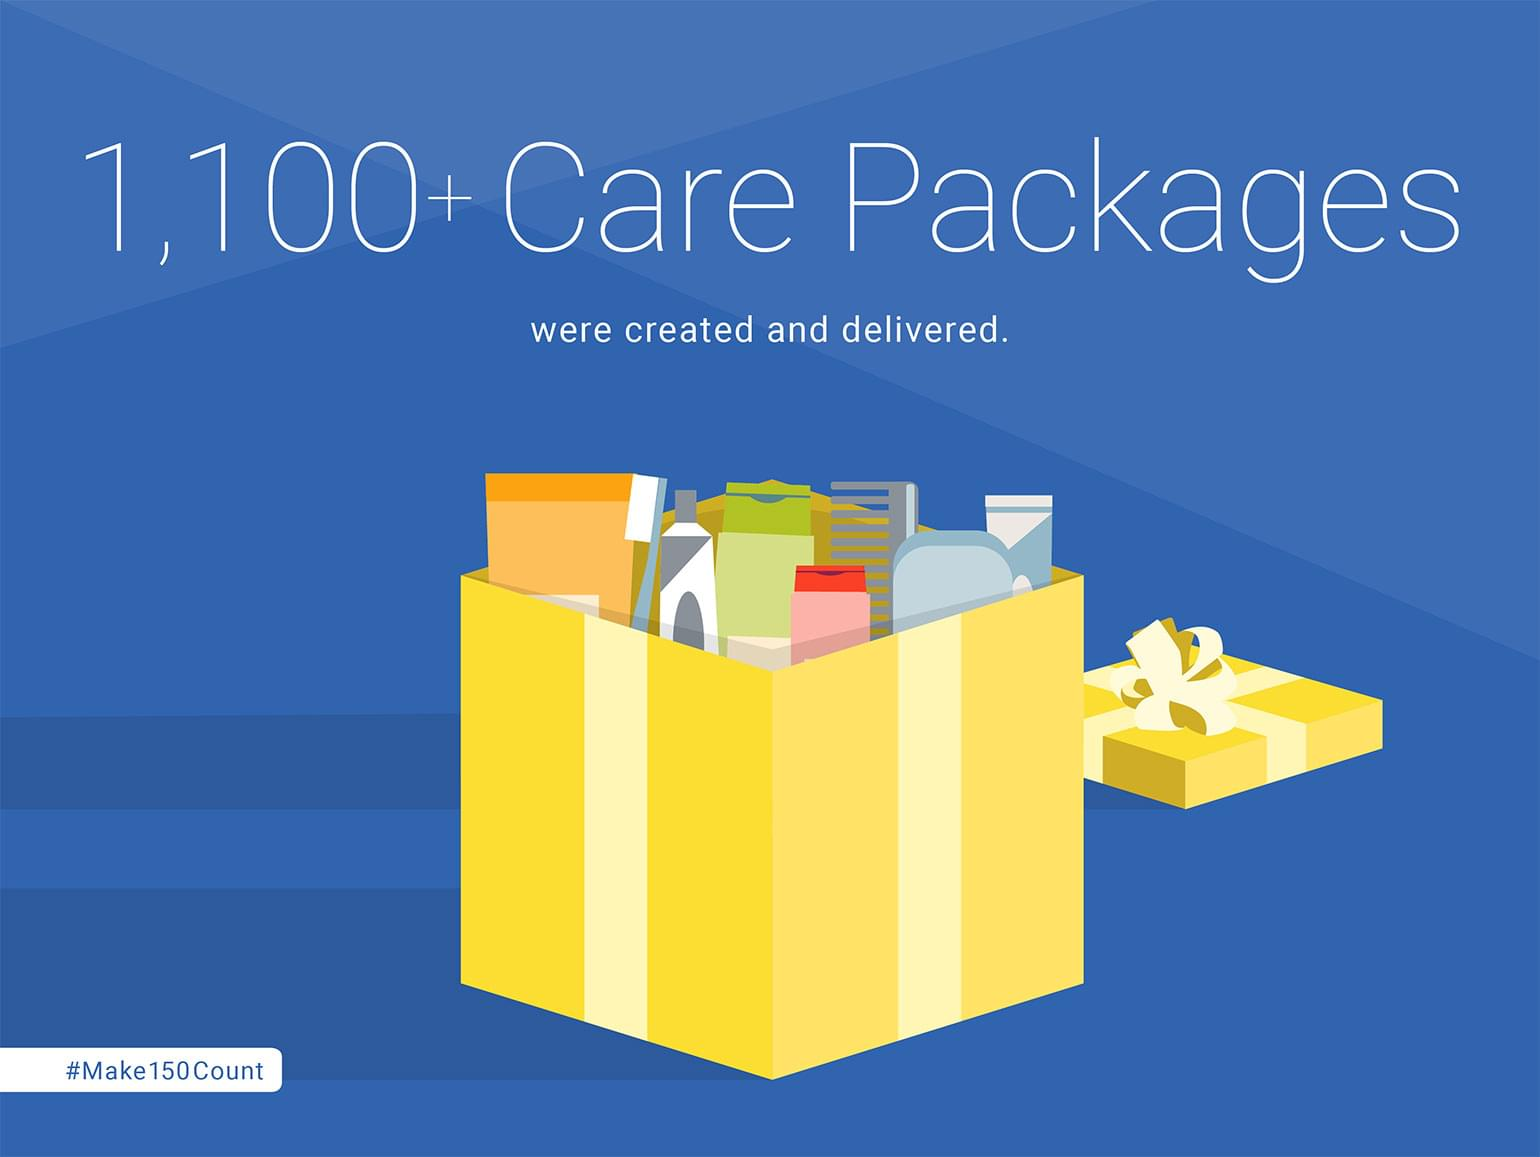 1,100+ Care Packages were created and delivered.